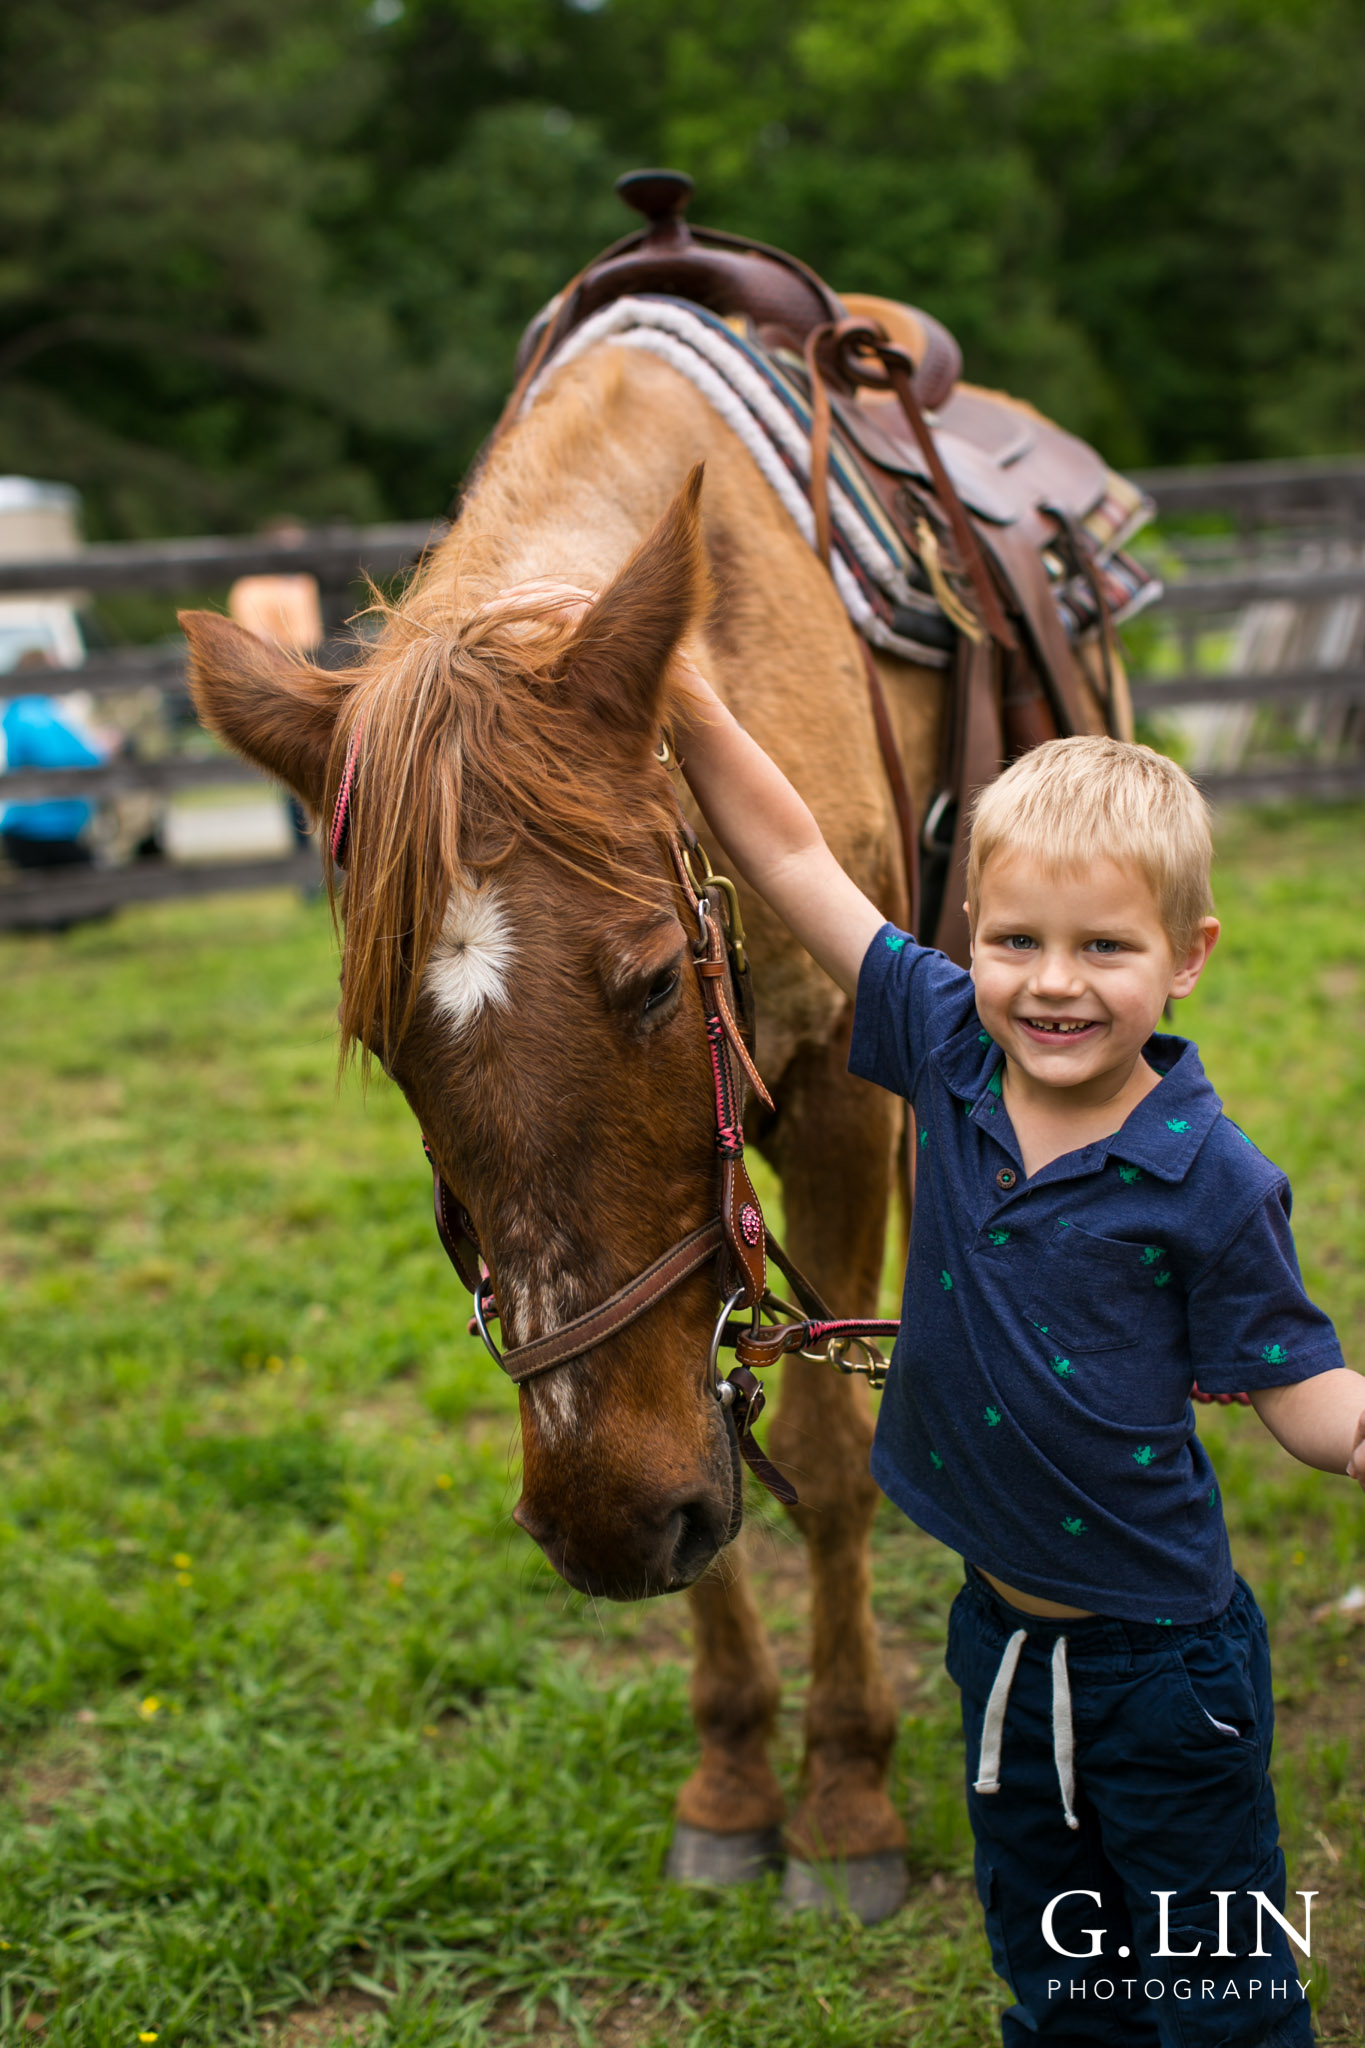 G. Lin Photography | Raleigh Event Photographer | Boy standing next to horse and smiling at camera